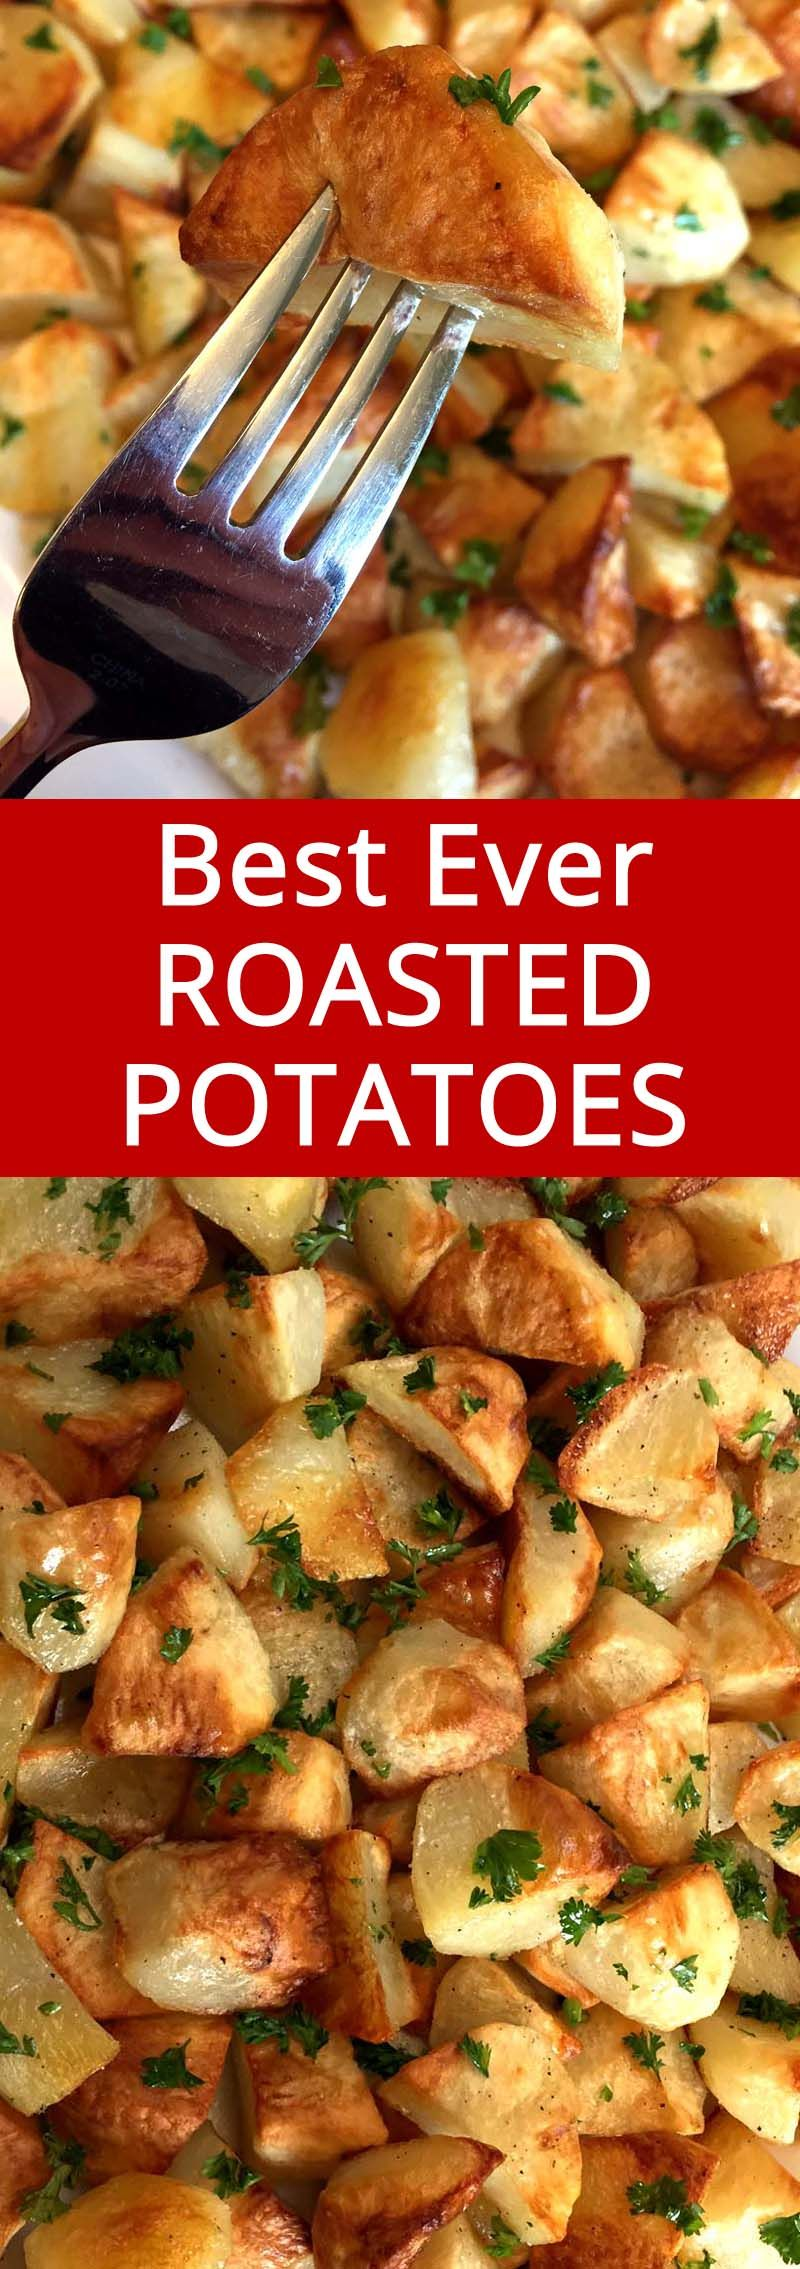 Easy Oven Roasted Potatoes Recipe Best Ever Recipe How To Cook Potatoes Roasted Potato Recipes Oven Roasted Potatoes